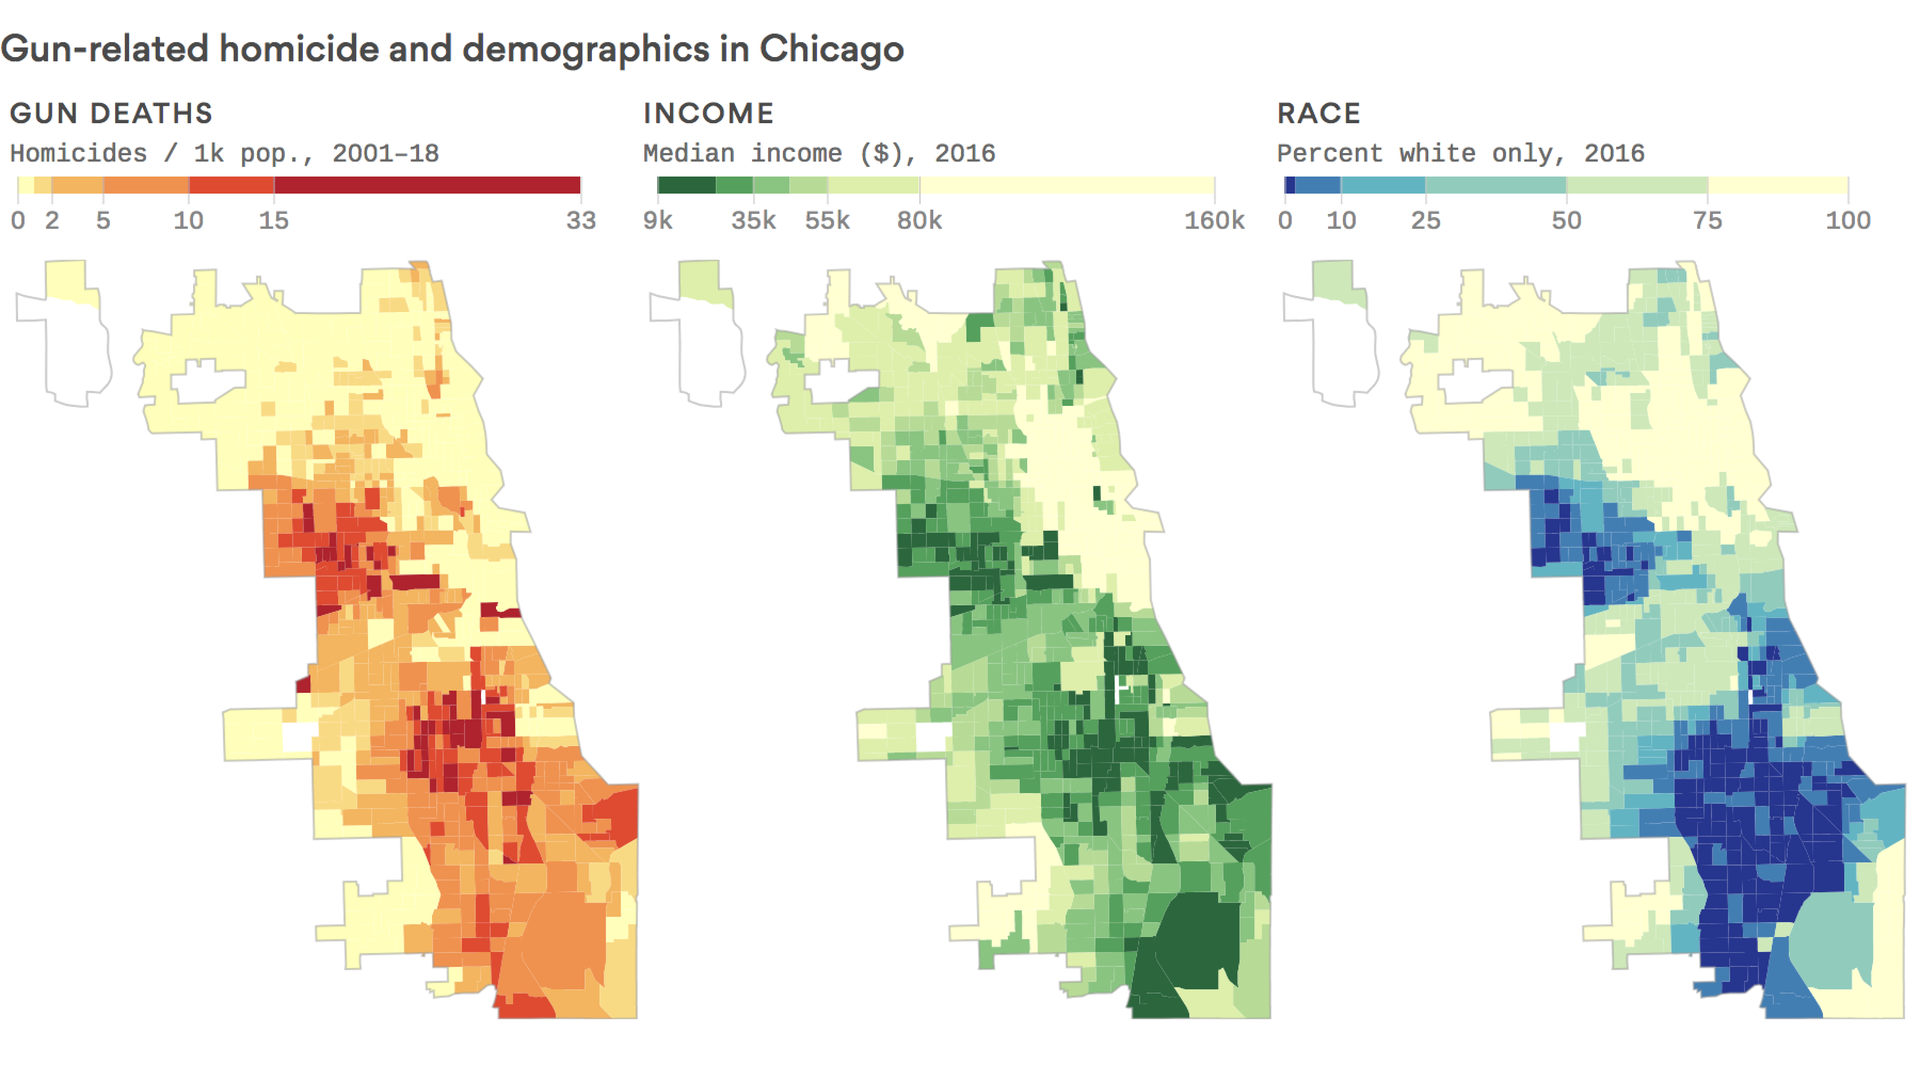 The Deadliest City: Behind Chicago's Segregated Shooting ... on chicago gang map, chicago economy map, chicago murder map, dangerous parts of chicago map, chicago neighborhood map, chicago zip code map, chicago youth violence map, chicago pollution map, chicago tourist map, worst parts of chicago map, chicago gun violence map, chicago hood, chicago shootings map, chicago ethnic groups map, chicago violence 2013, chicago mafia map, chicago alderman ward map 2014, chicago death map, chicago western map, chicago homicide map,